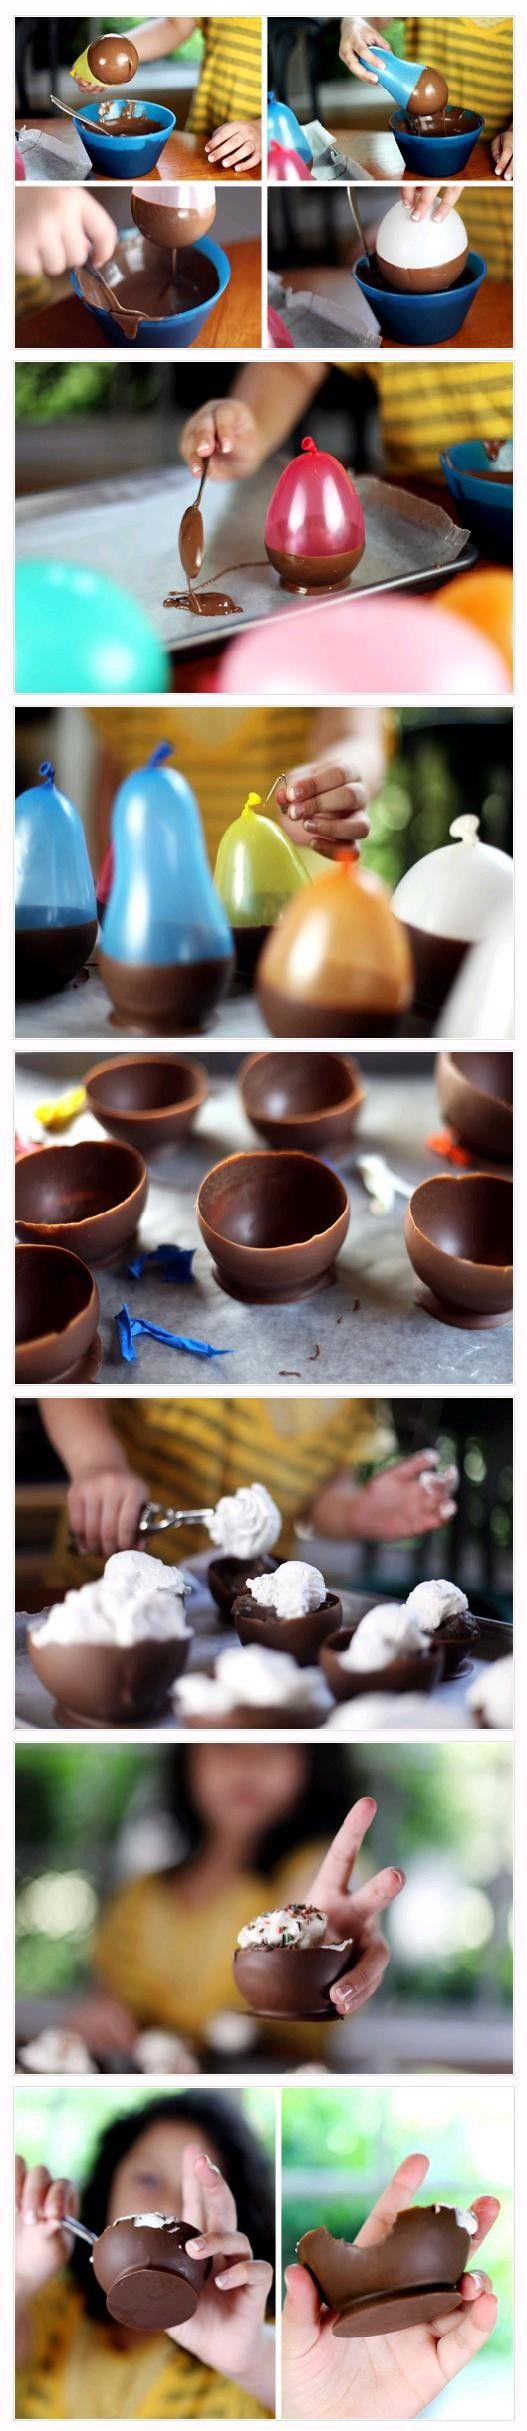 Chocolate ice cream cups!